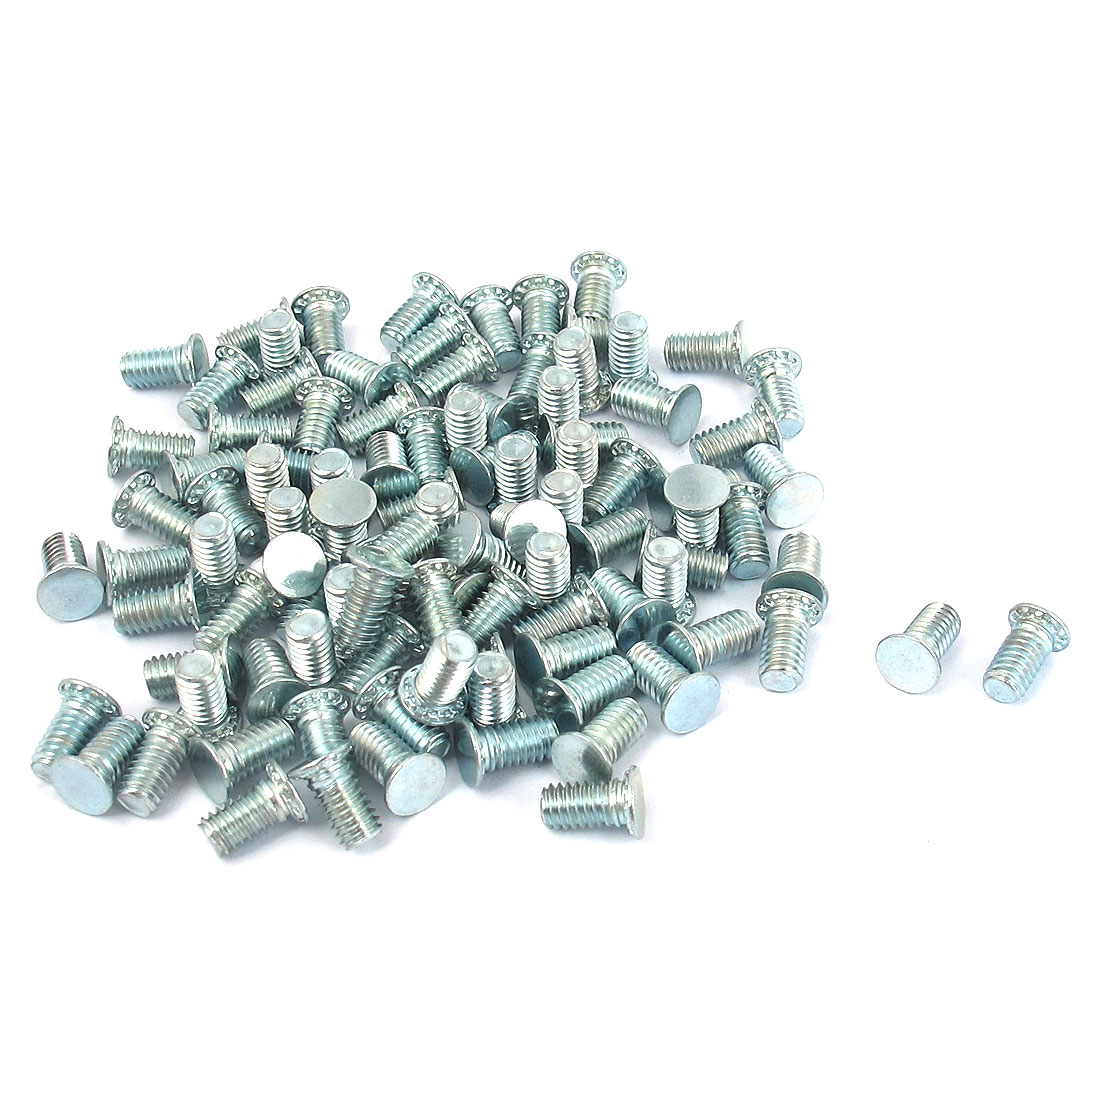 M4x8mm Zinc Plated Flush Head Self Clinching Threaded Studs Fastener 100pcs